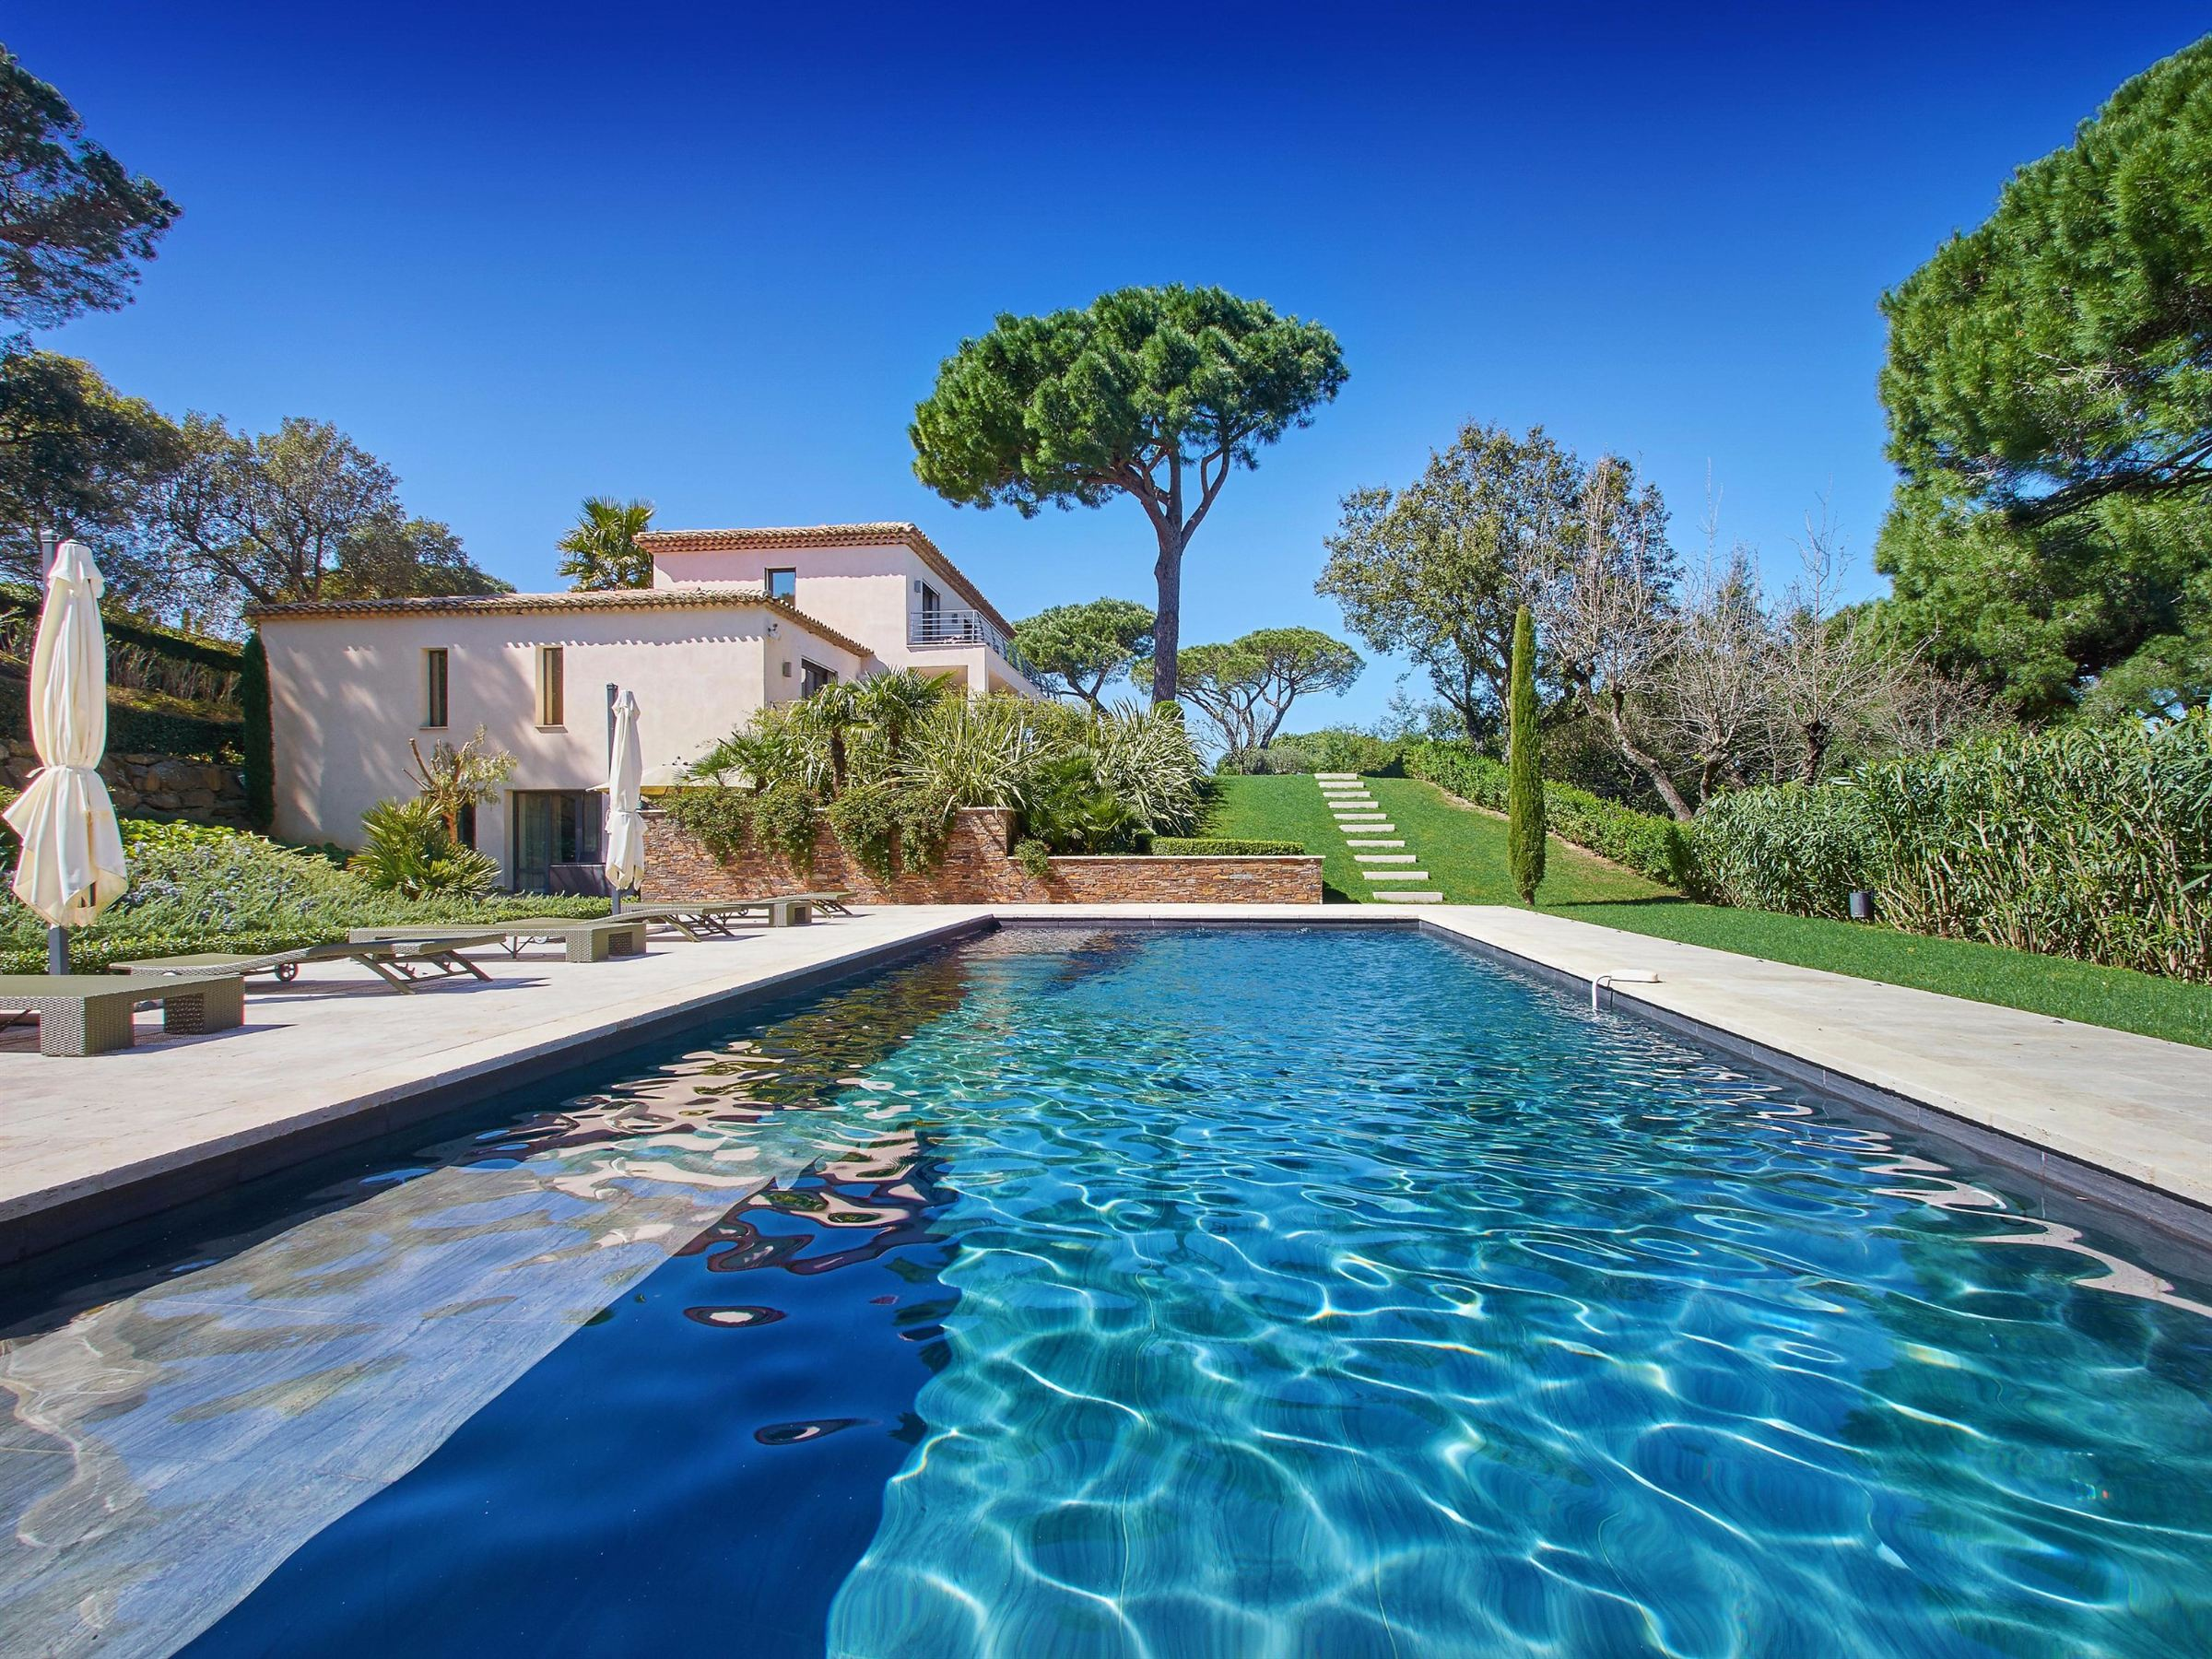 Single Family Home for Sale at Mediterranean estate in a sough after area of Saint-Tropez Other France, Other Areas In France, 83990 France